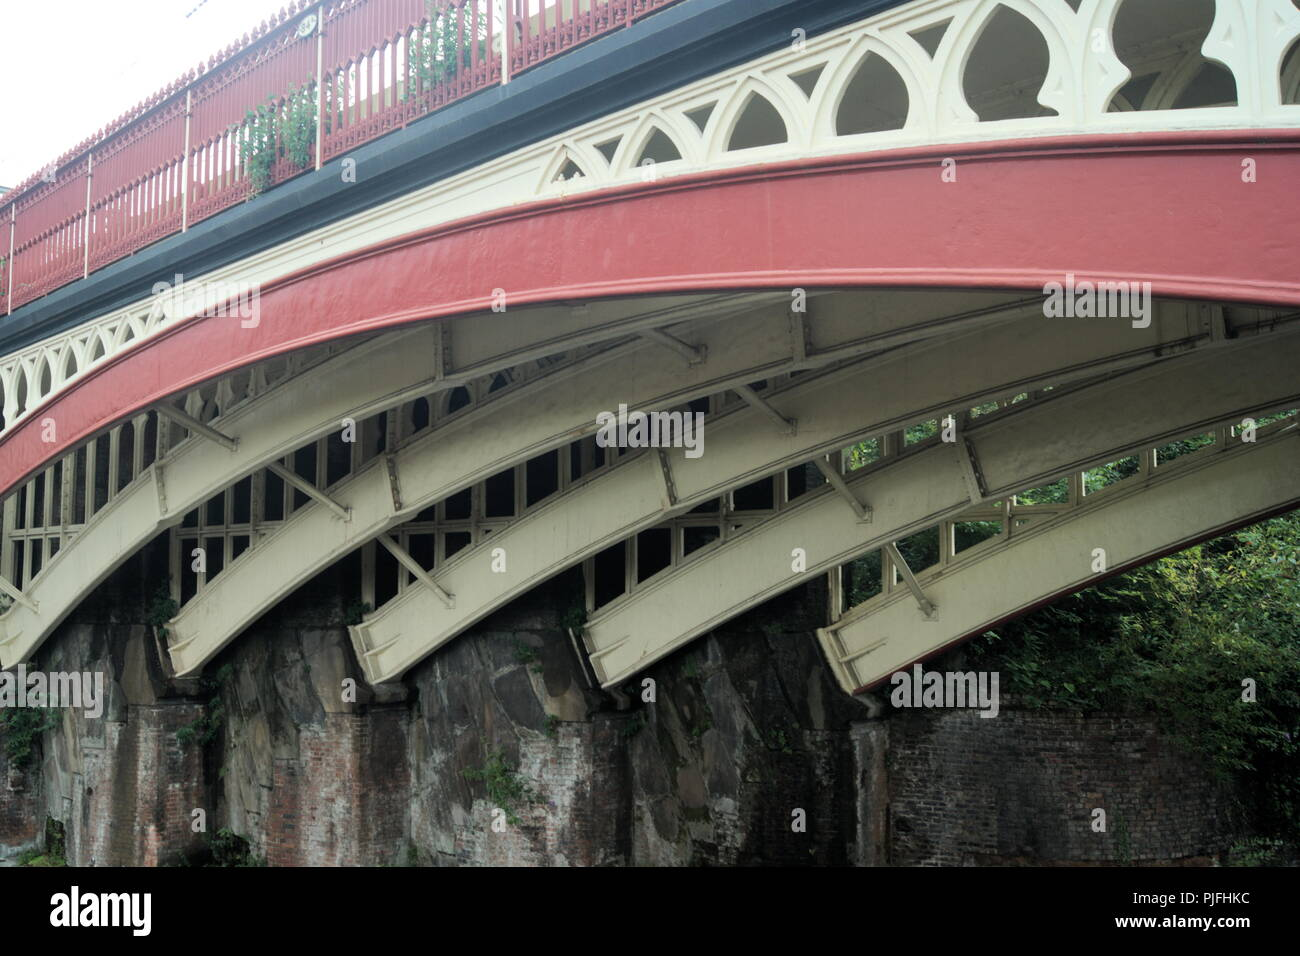 View of a cast iron railway bridge at Castlefields, Manchester, England. A close up view of the curved supports for this elegant and beautiful bridge. Stock Photo